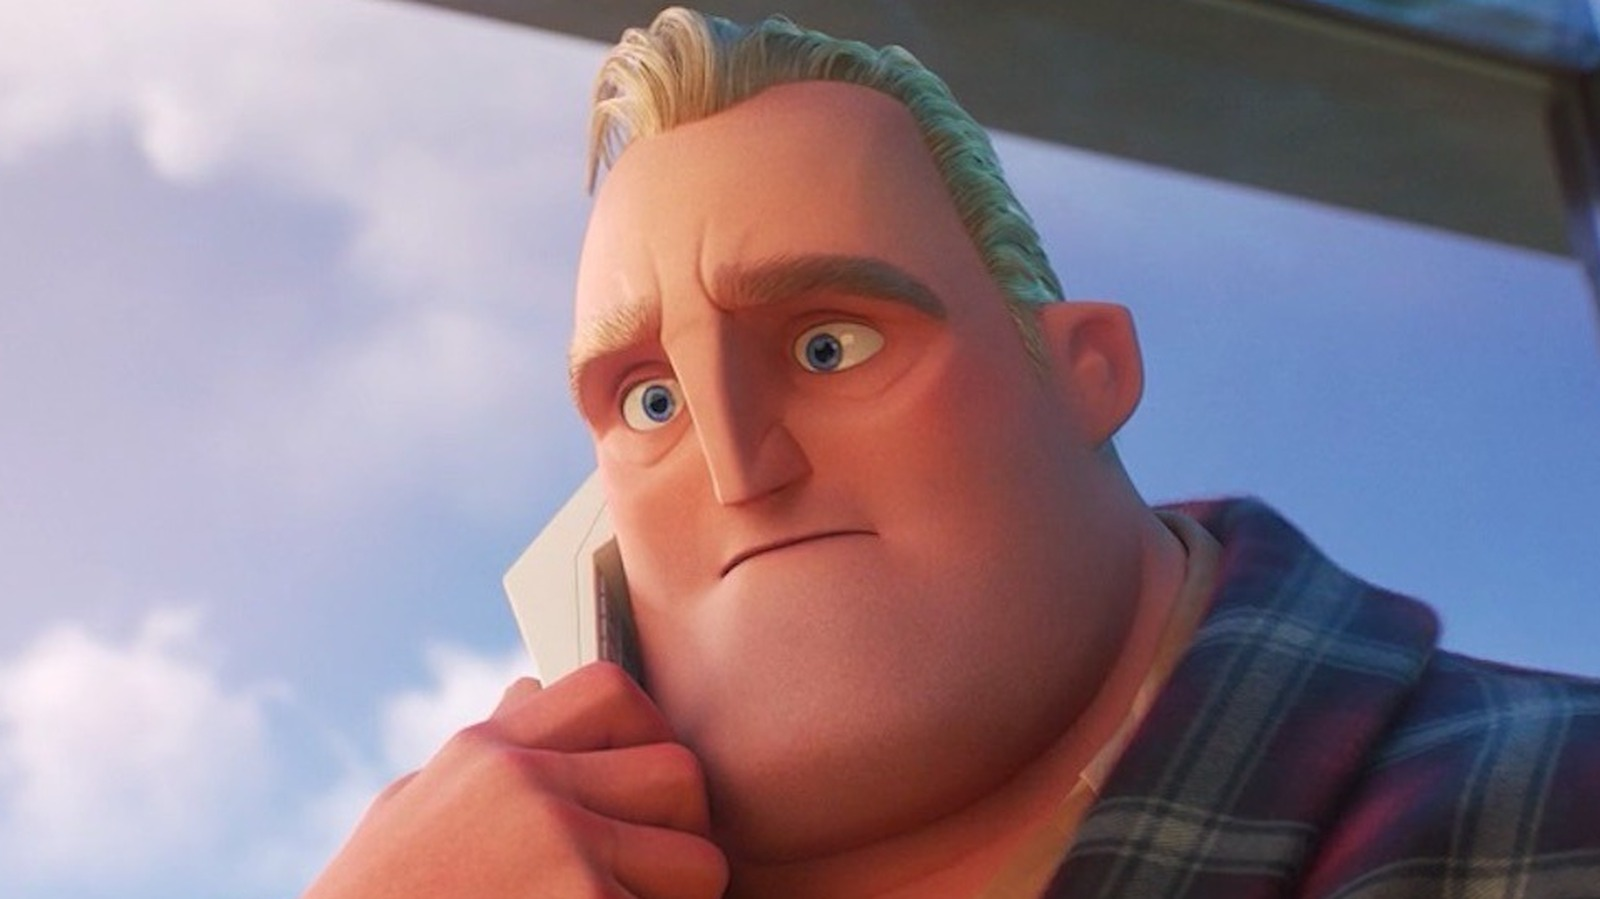 Incredibles 2 Was Released After Almost A Decade - Why Did It Take So Long